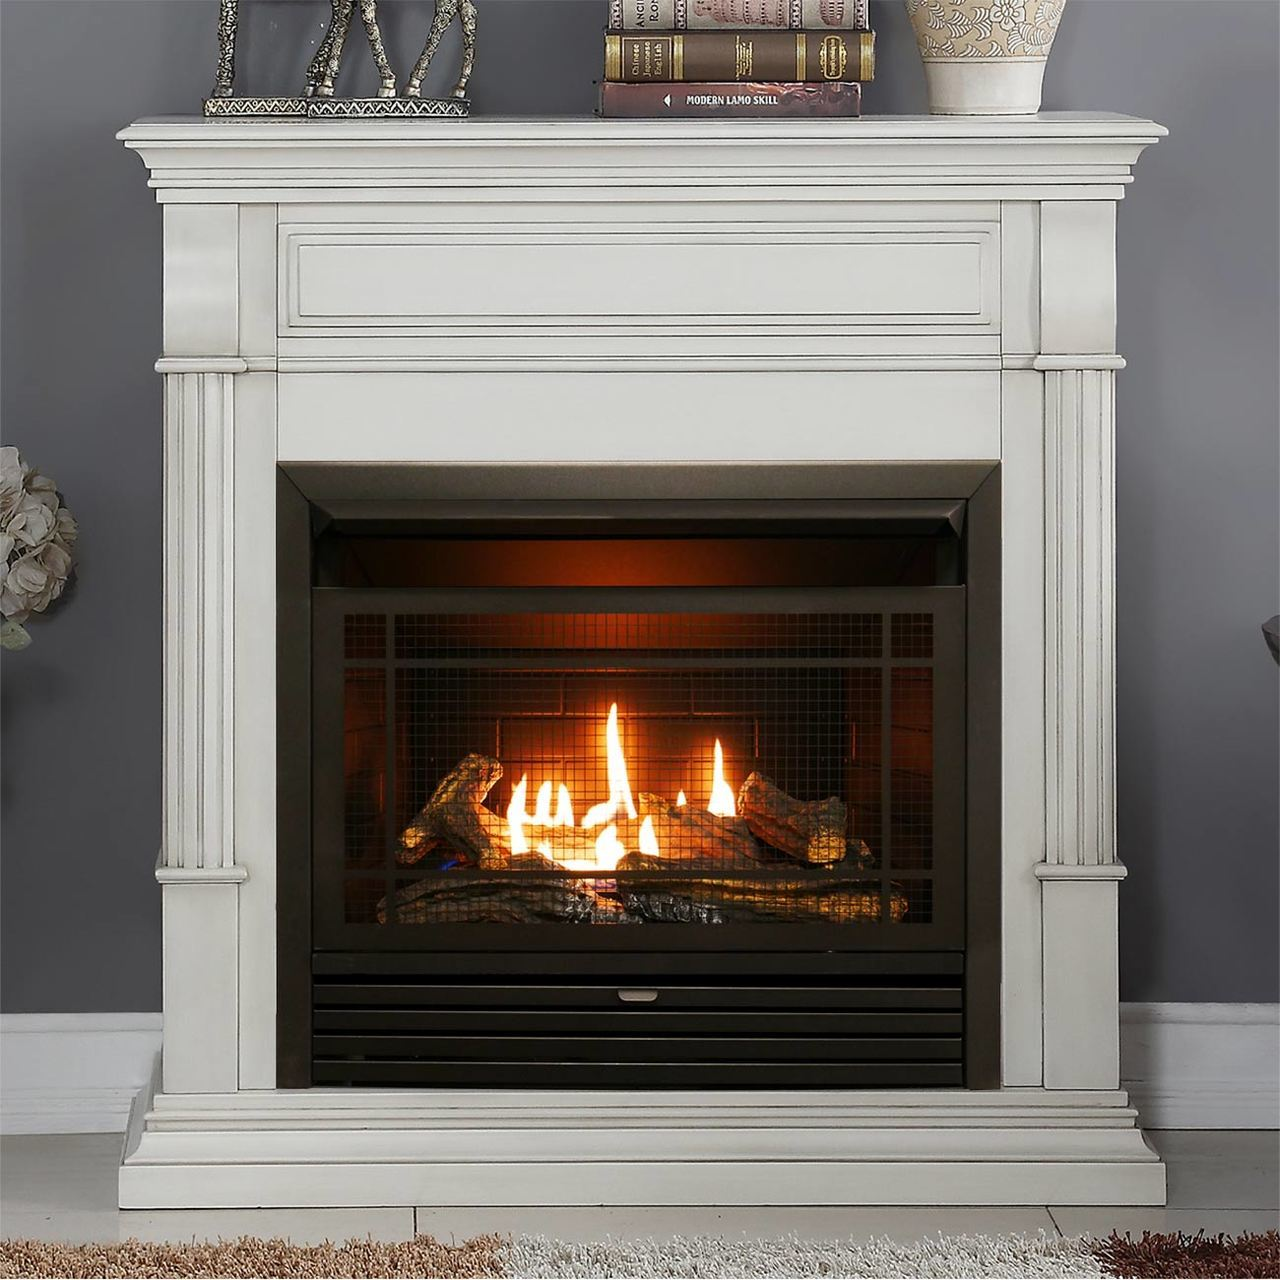 Duluth Forge Dual Fuel Ventless Gas Fireplace 26 000 Btu Remote Control Antique White